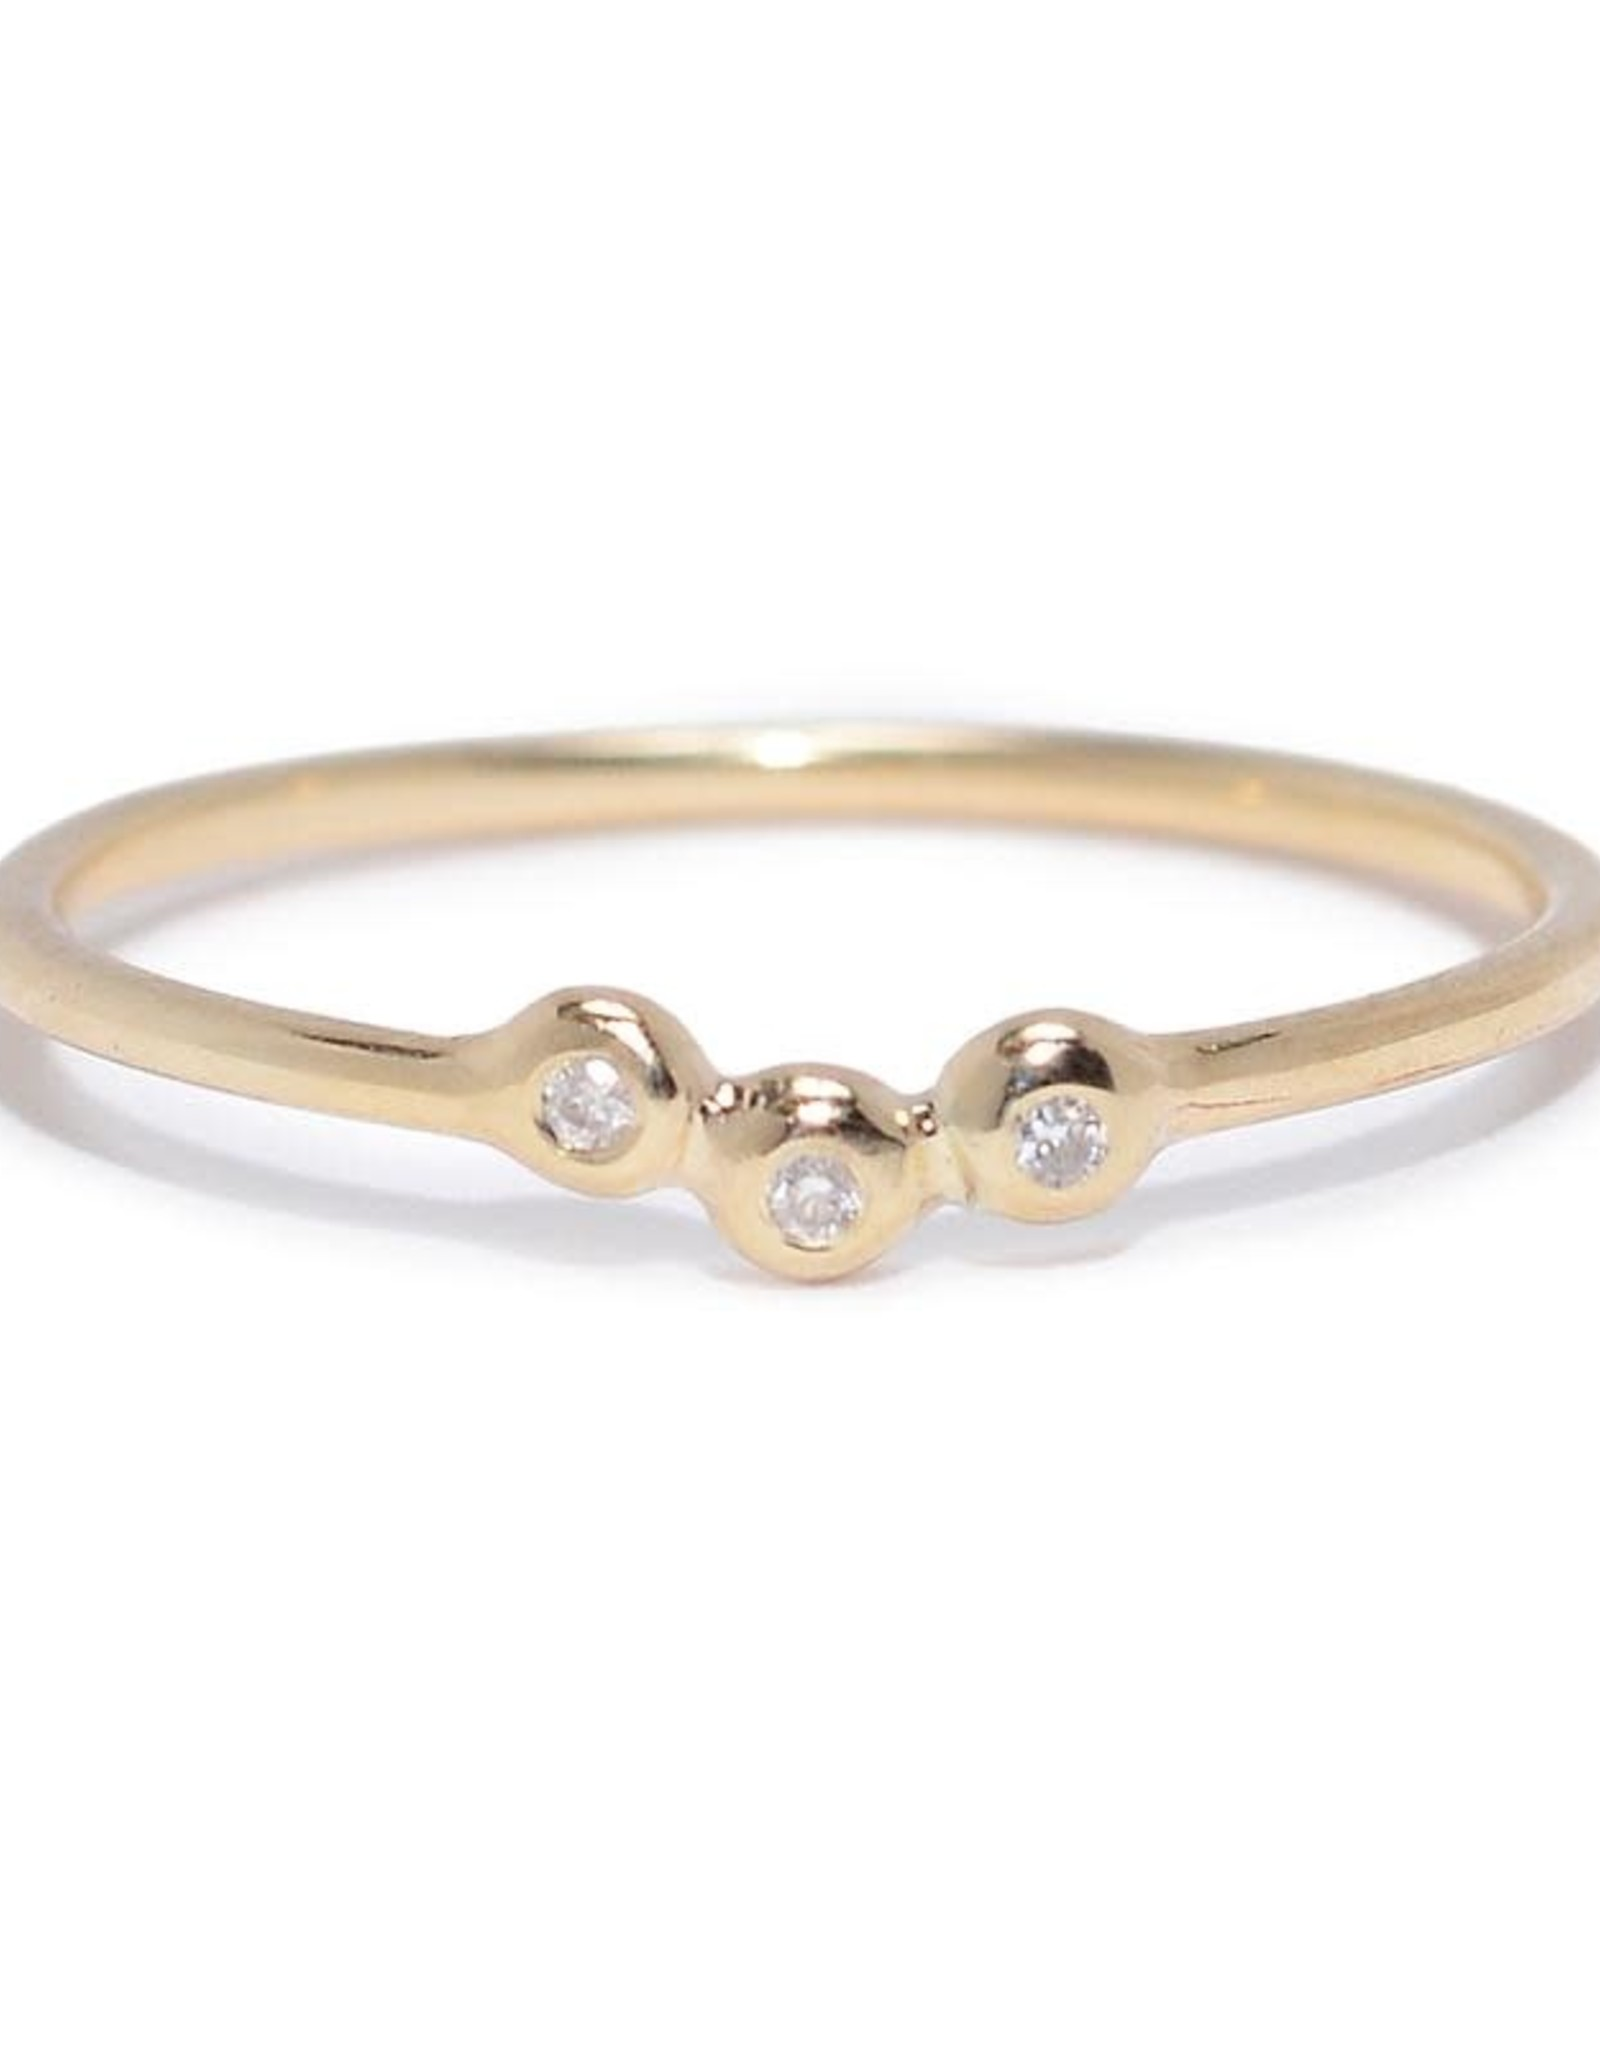 Scosha Trio Cluster Ring - Diamonds